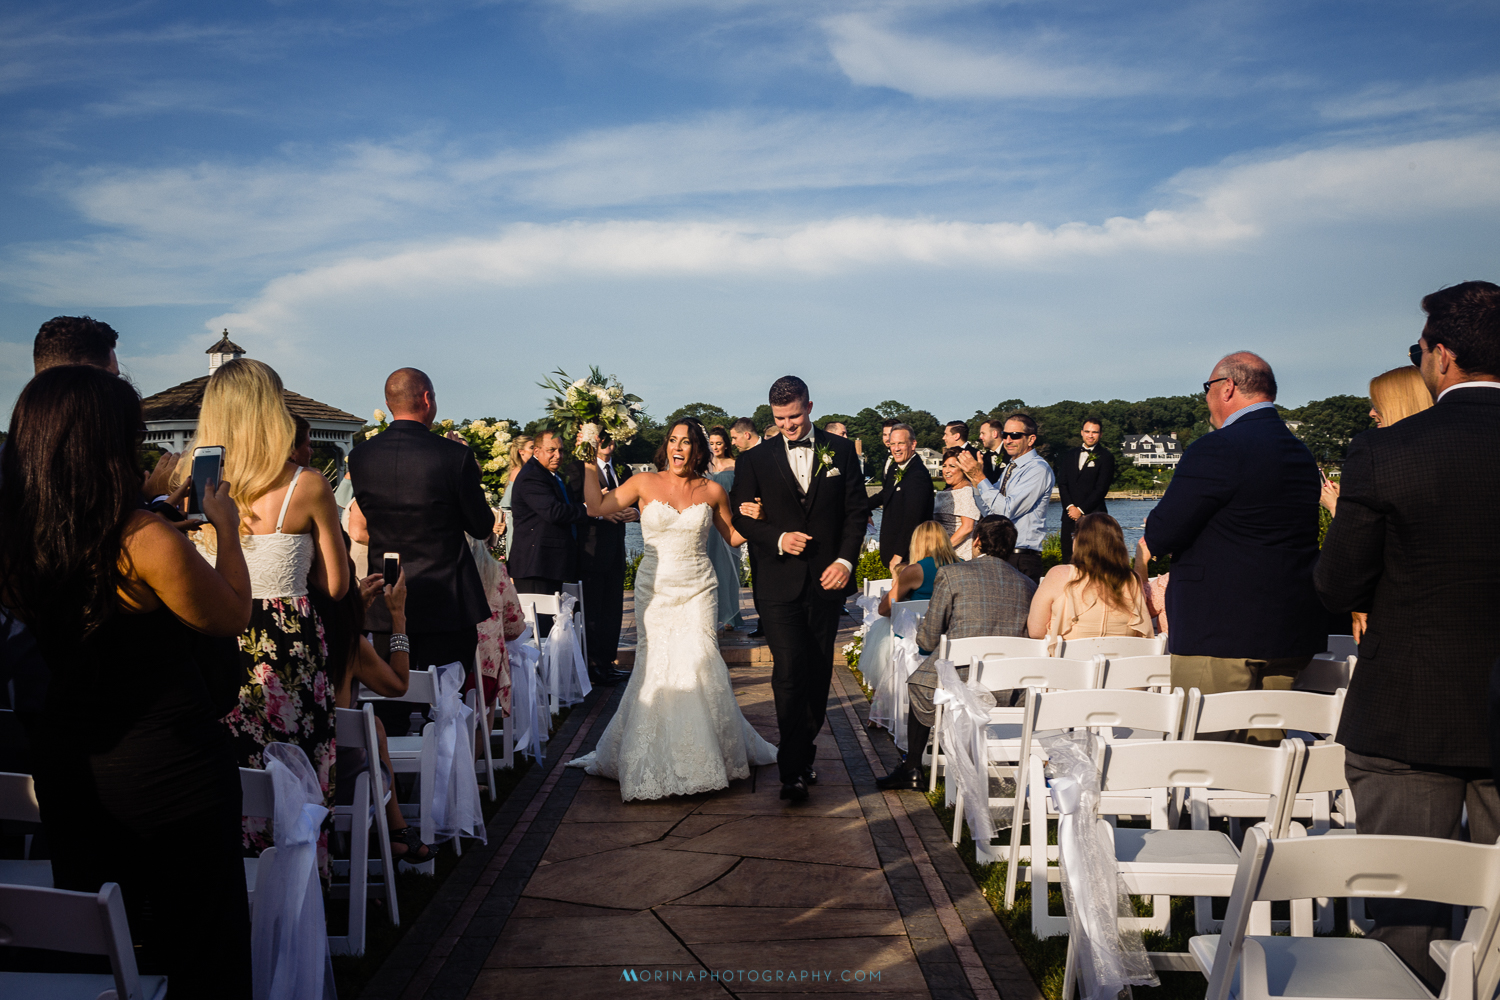 Amanda & Austin wedding at Crystal Point Yacht Club 85.jpg